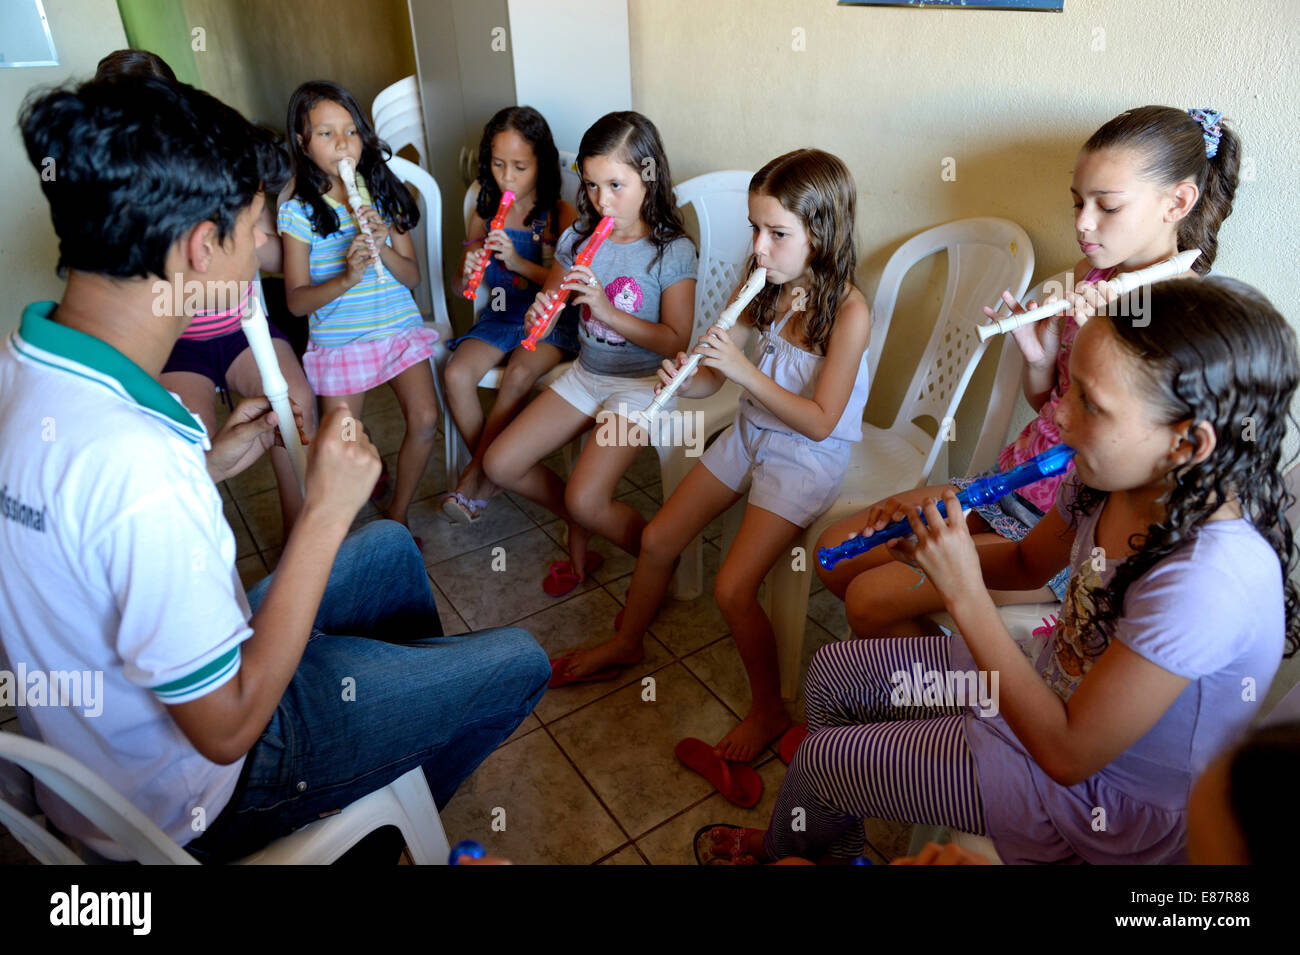 Music lessons, children learning to play the recorder, Ponta da Serra, Crato, State of Ceará, Brazil - Stock Image